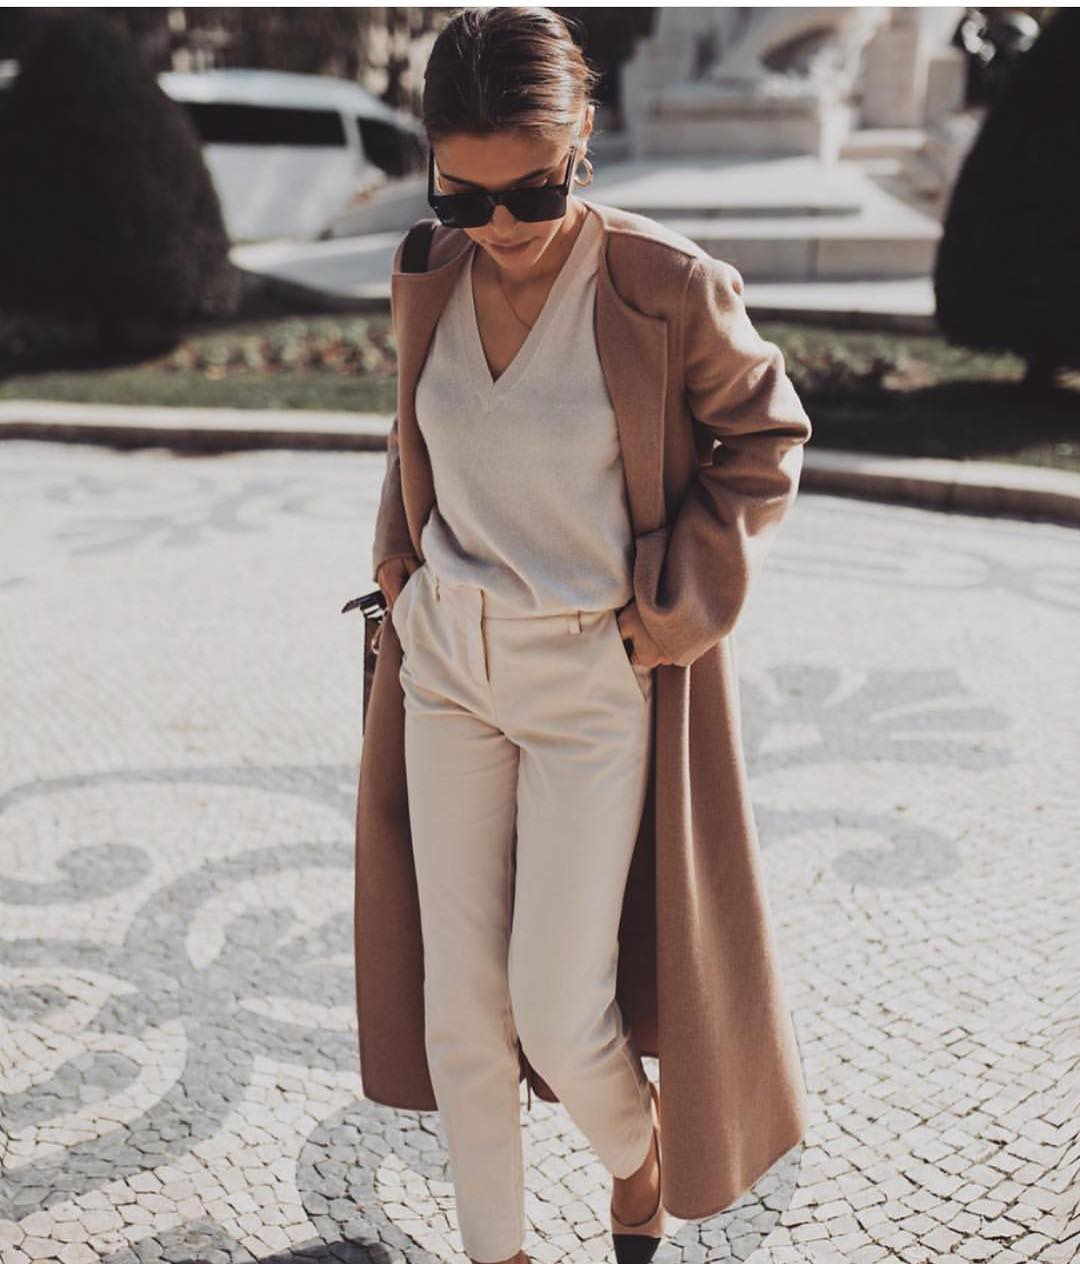 Maxi Camel Wool Coat With Cream V-neck Sweater And Cream Pants For Fall 2019